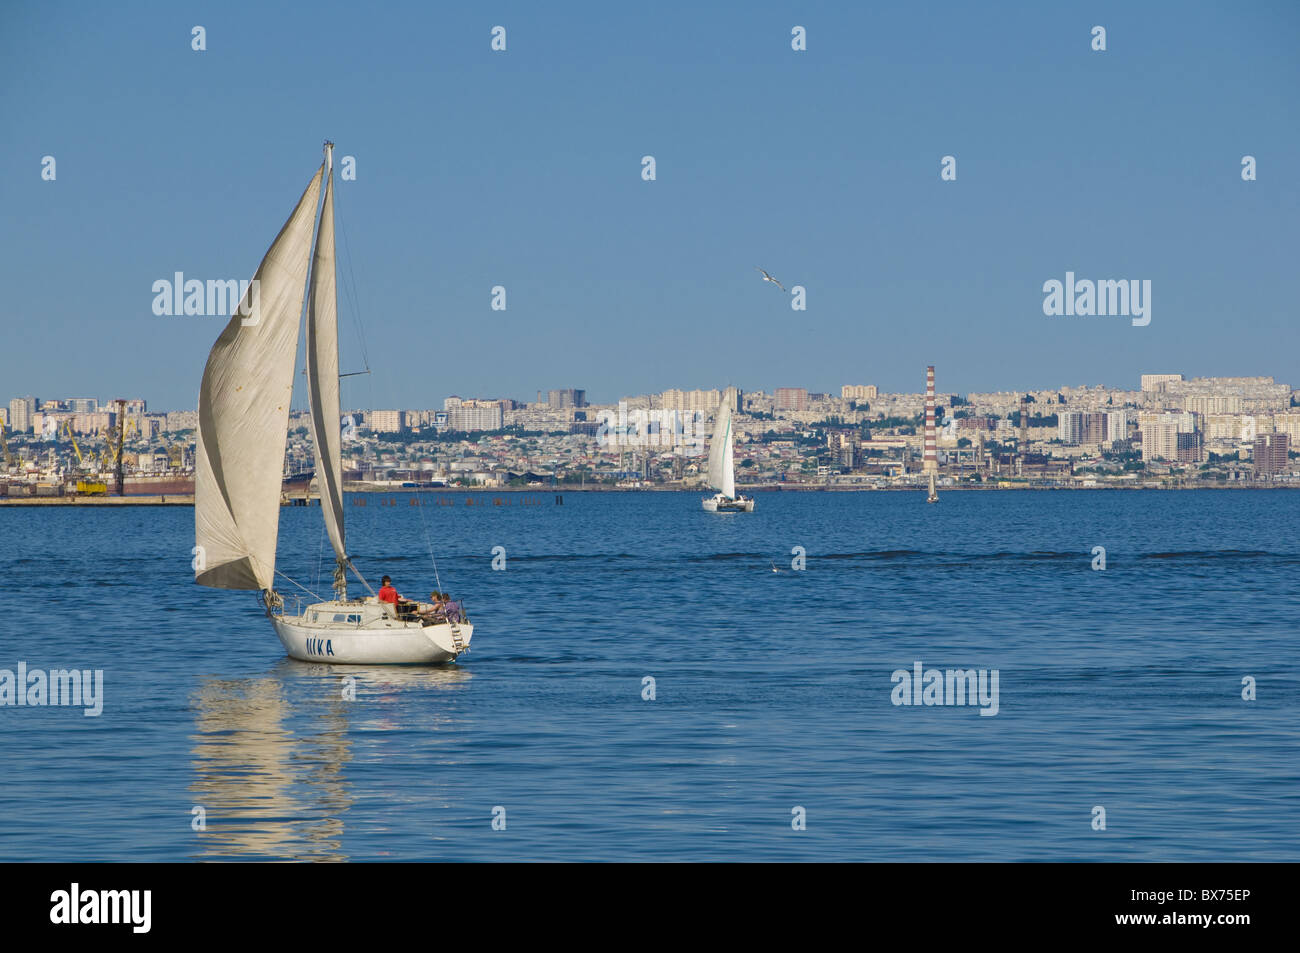 Sailing boat on Baku Bay, Baku, Azerbaijan, Central Asia, Asia Stock Photo